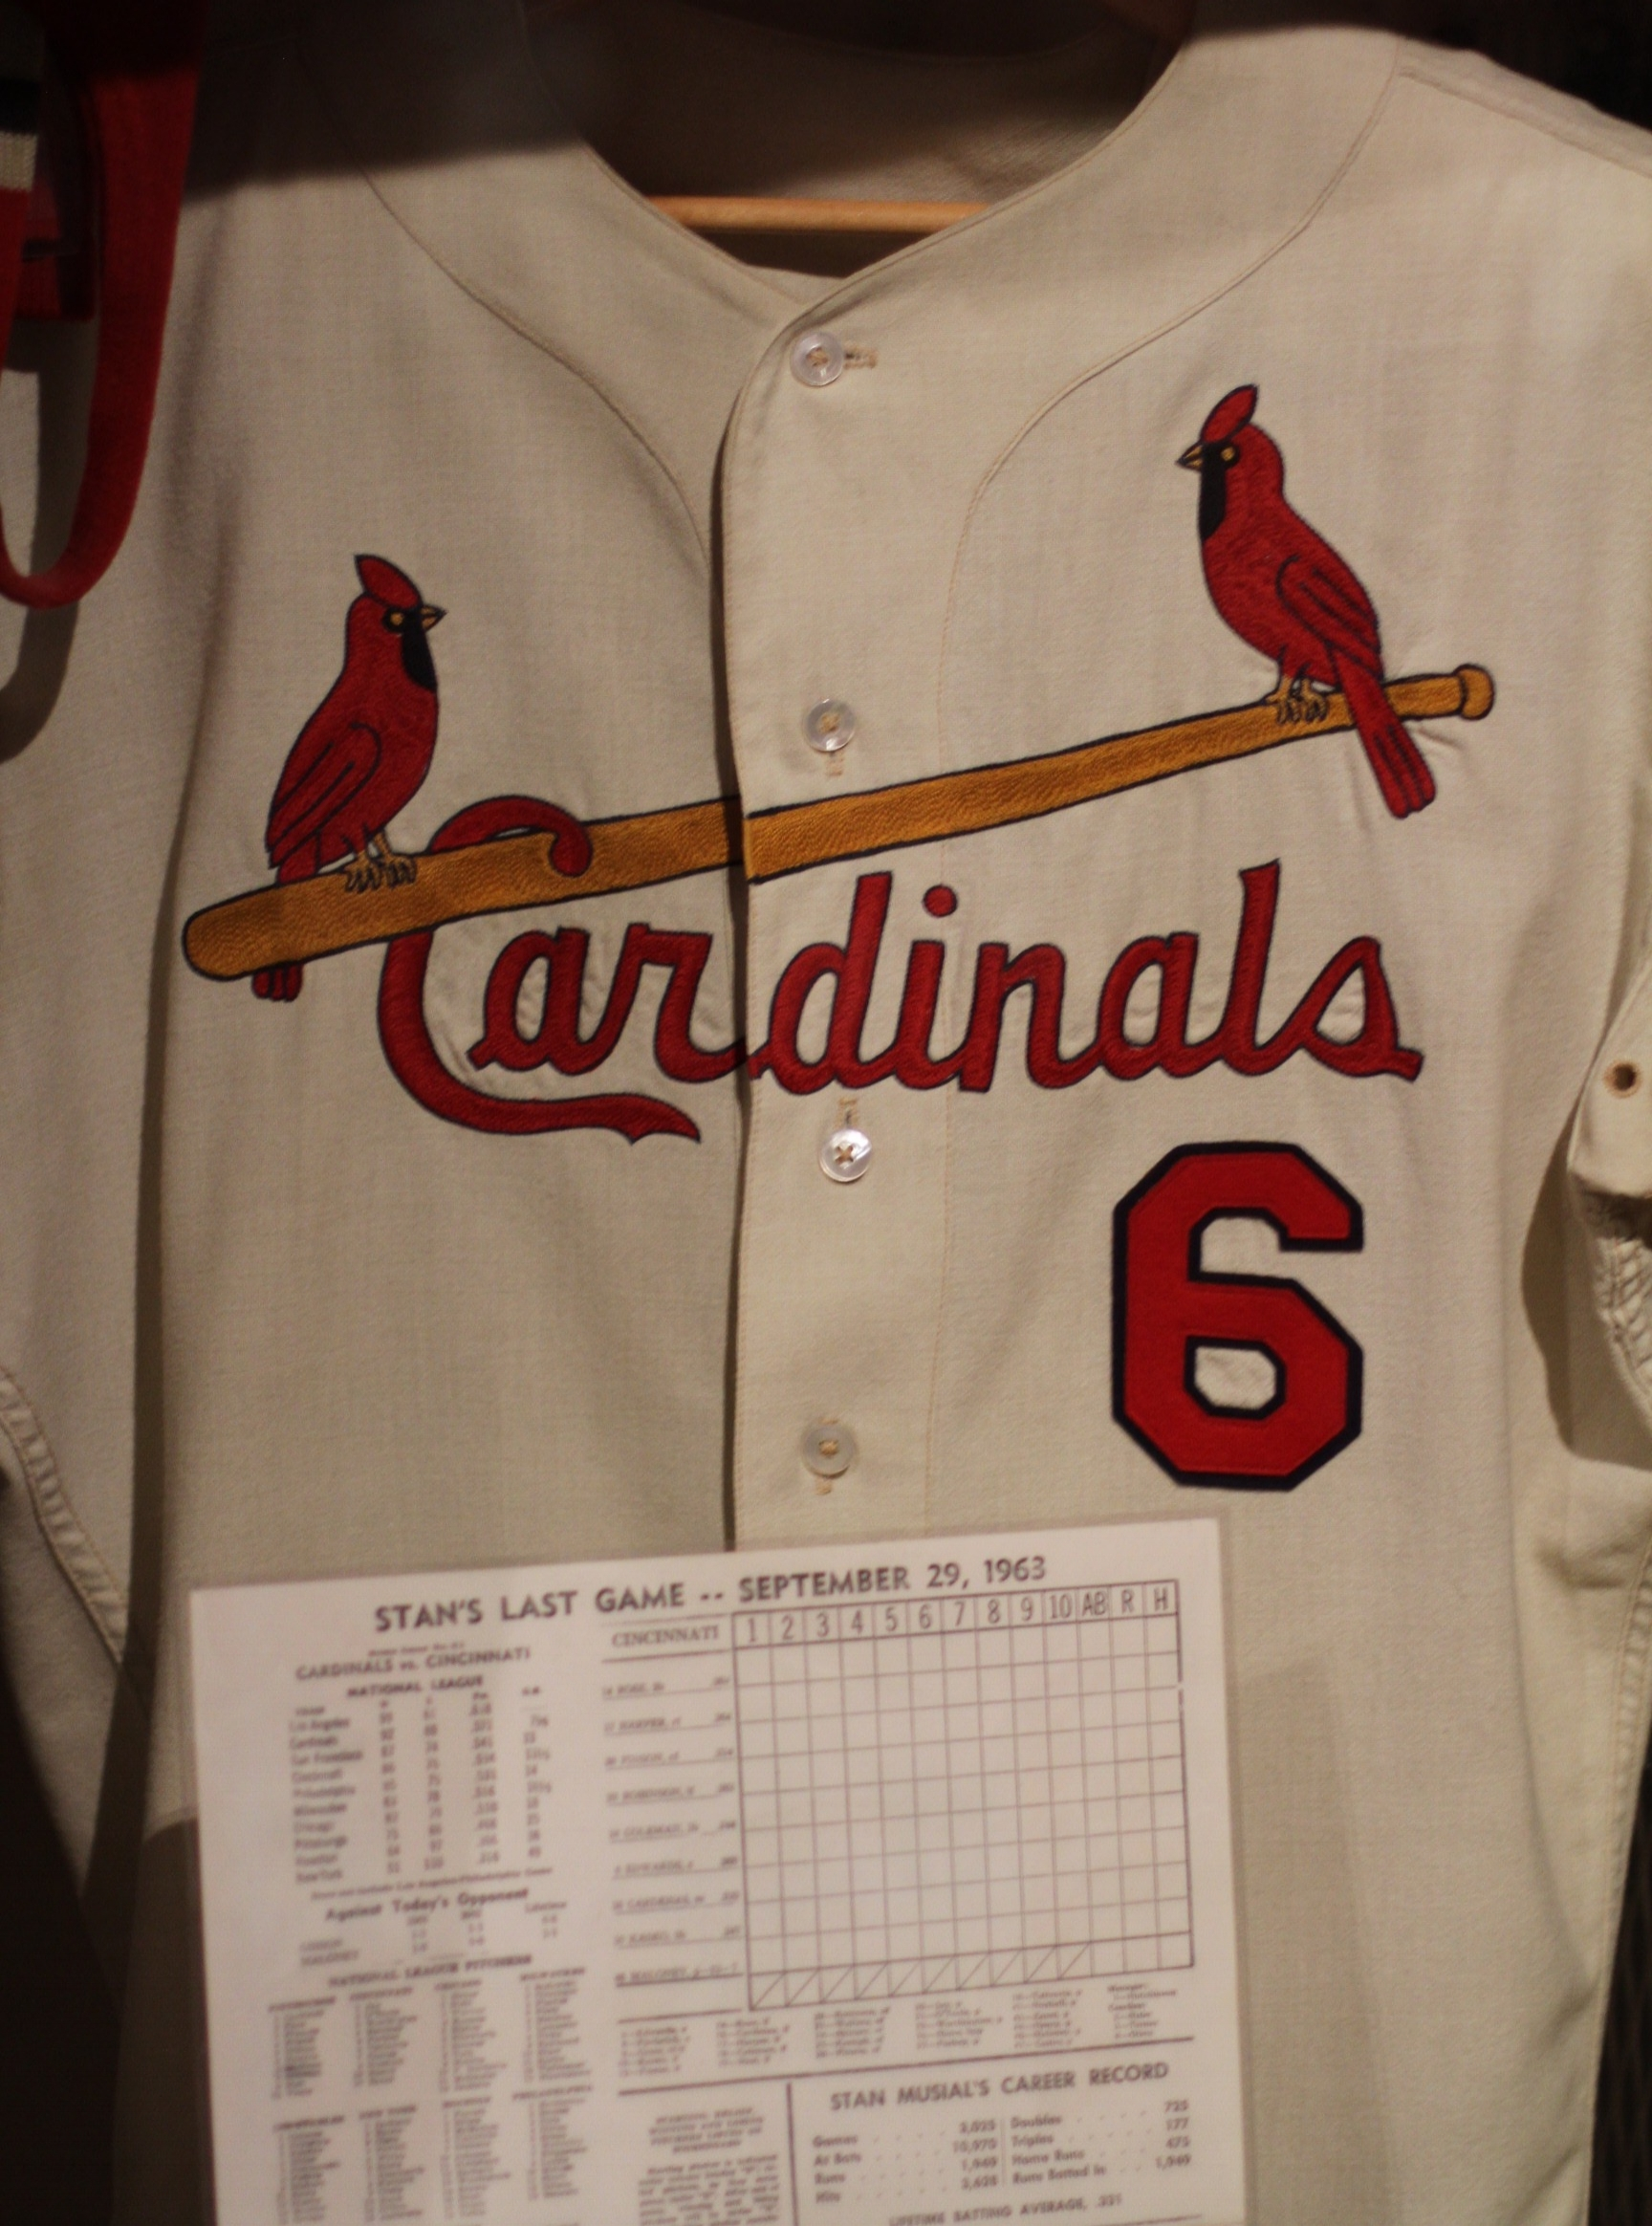 Stan Musial's jersey.